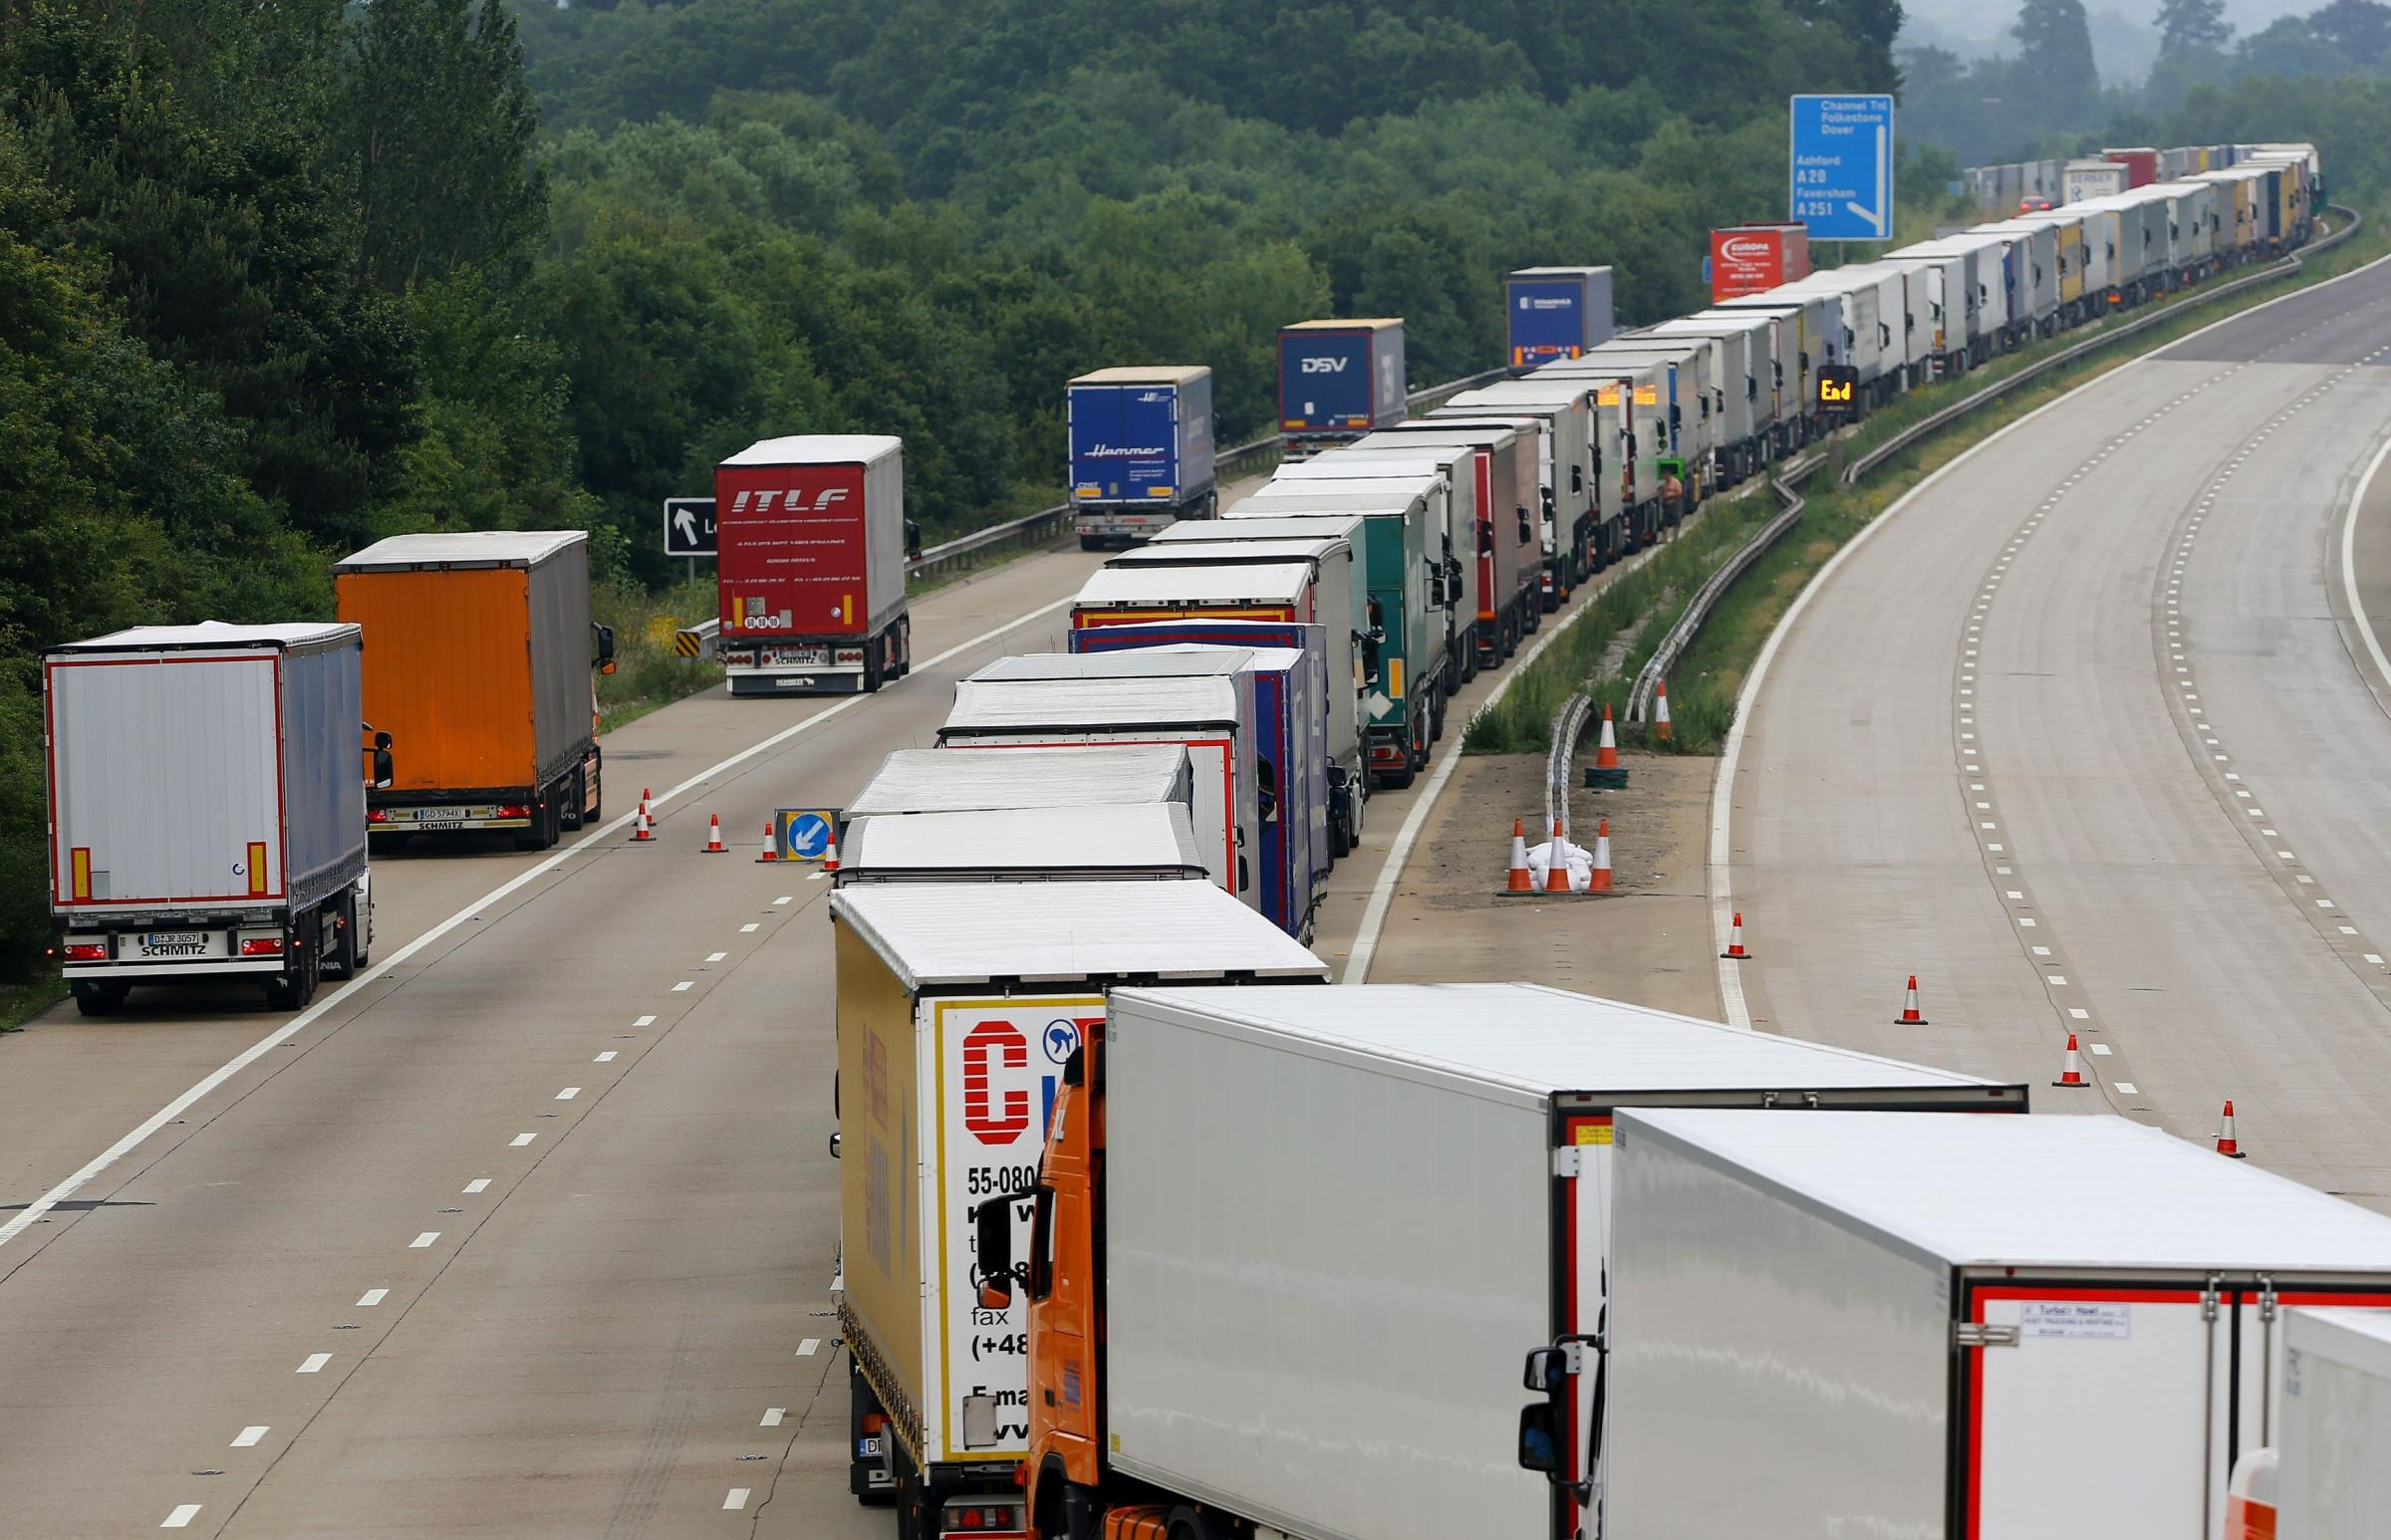 The UK Government is planning a traffic stress-test with HGVs as part of no-deal Brexit preparation